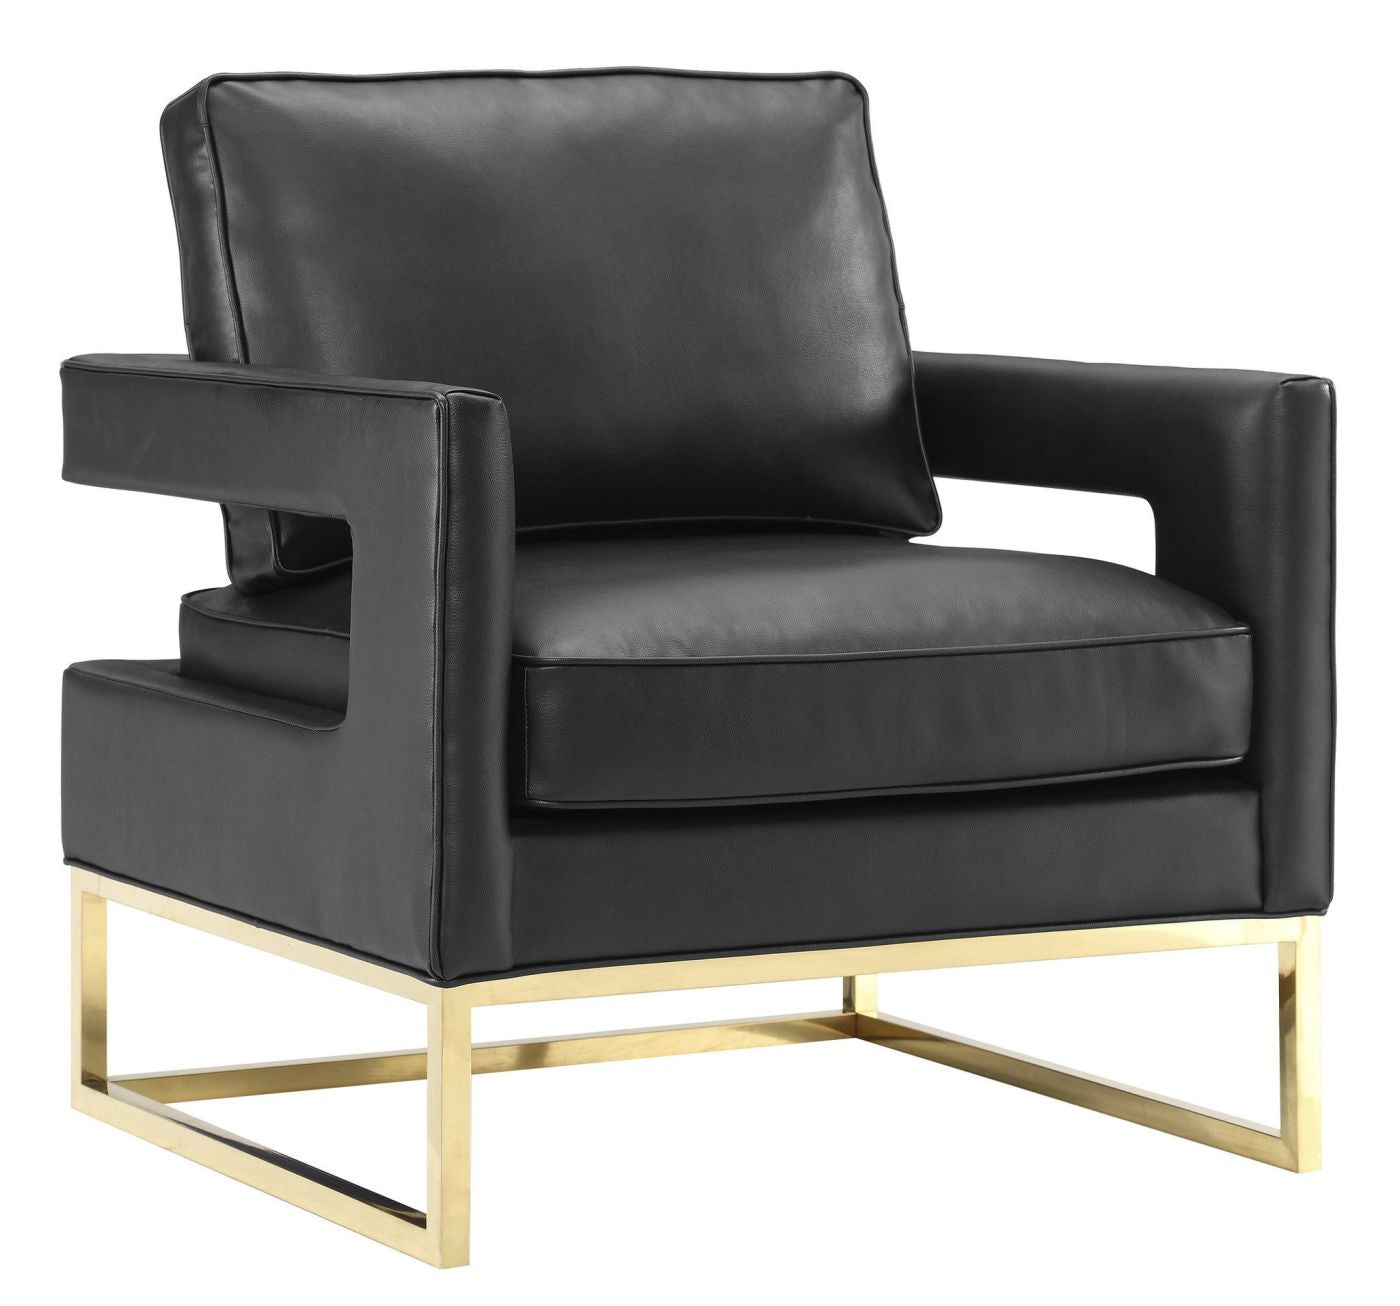 Black and gold furniture at contemporary furniture warehouse